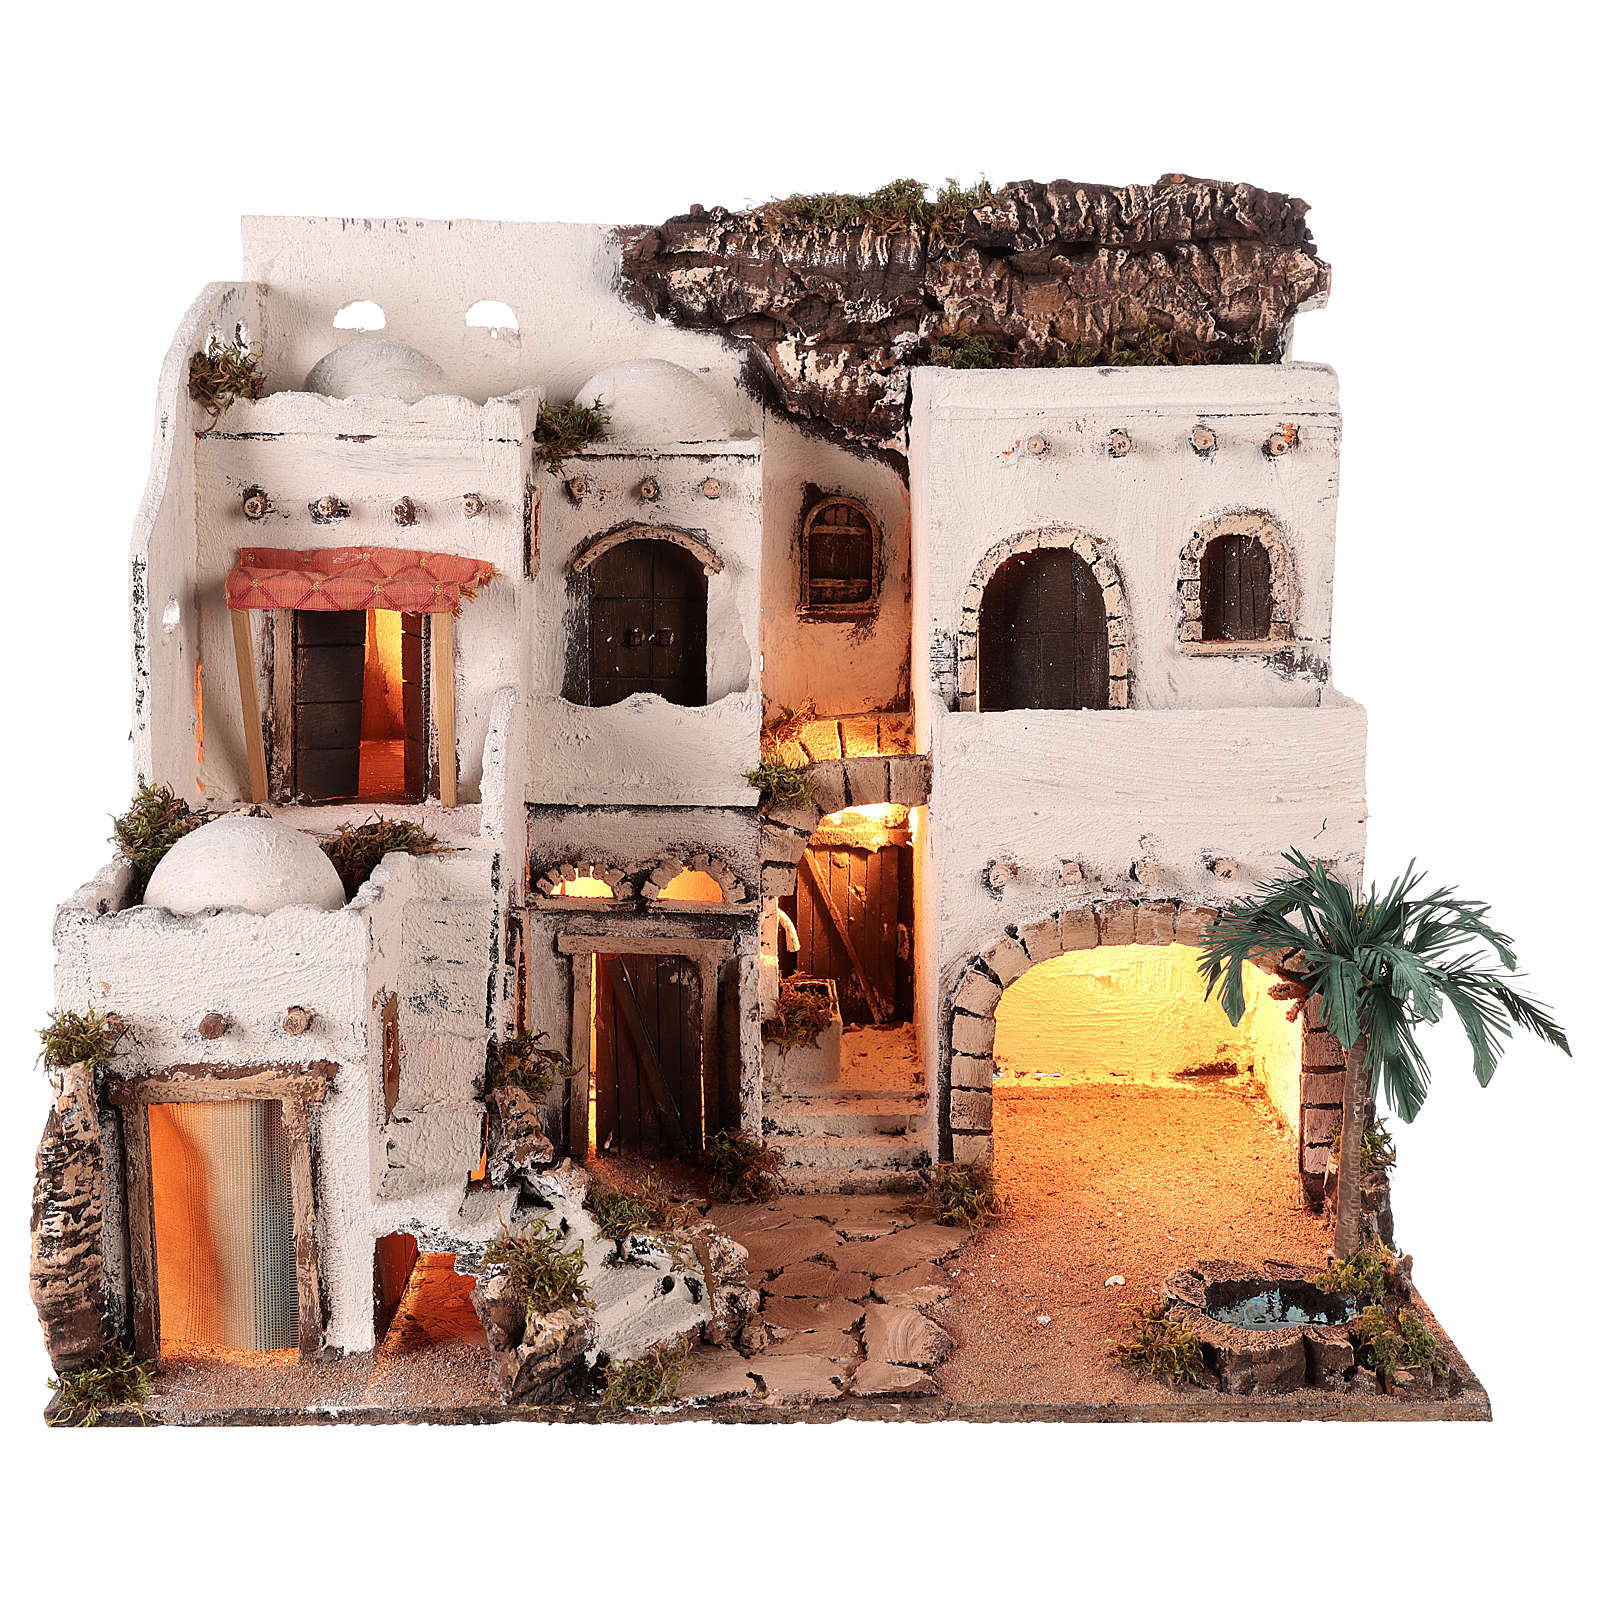 Arab-style setting with oasis for 10 cm Neapolitan Nativity scene 4